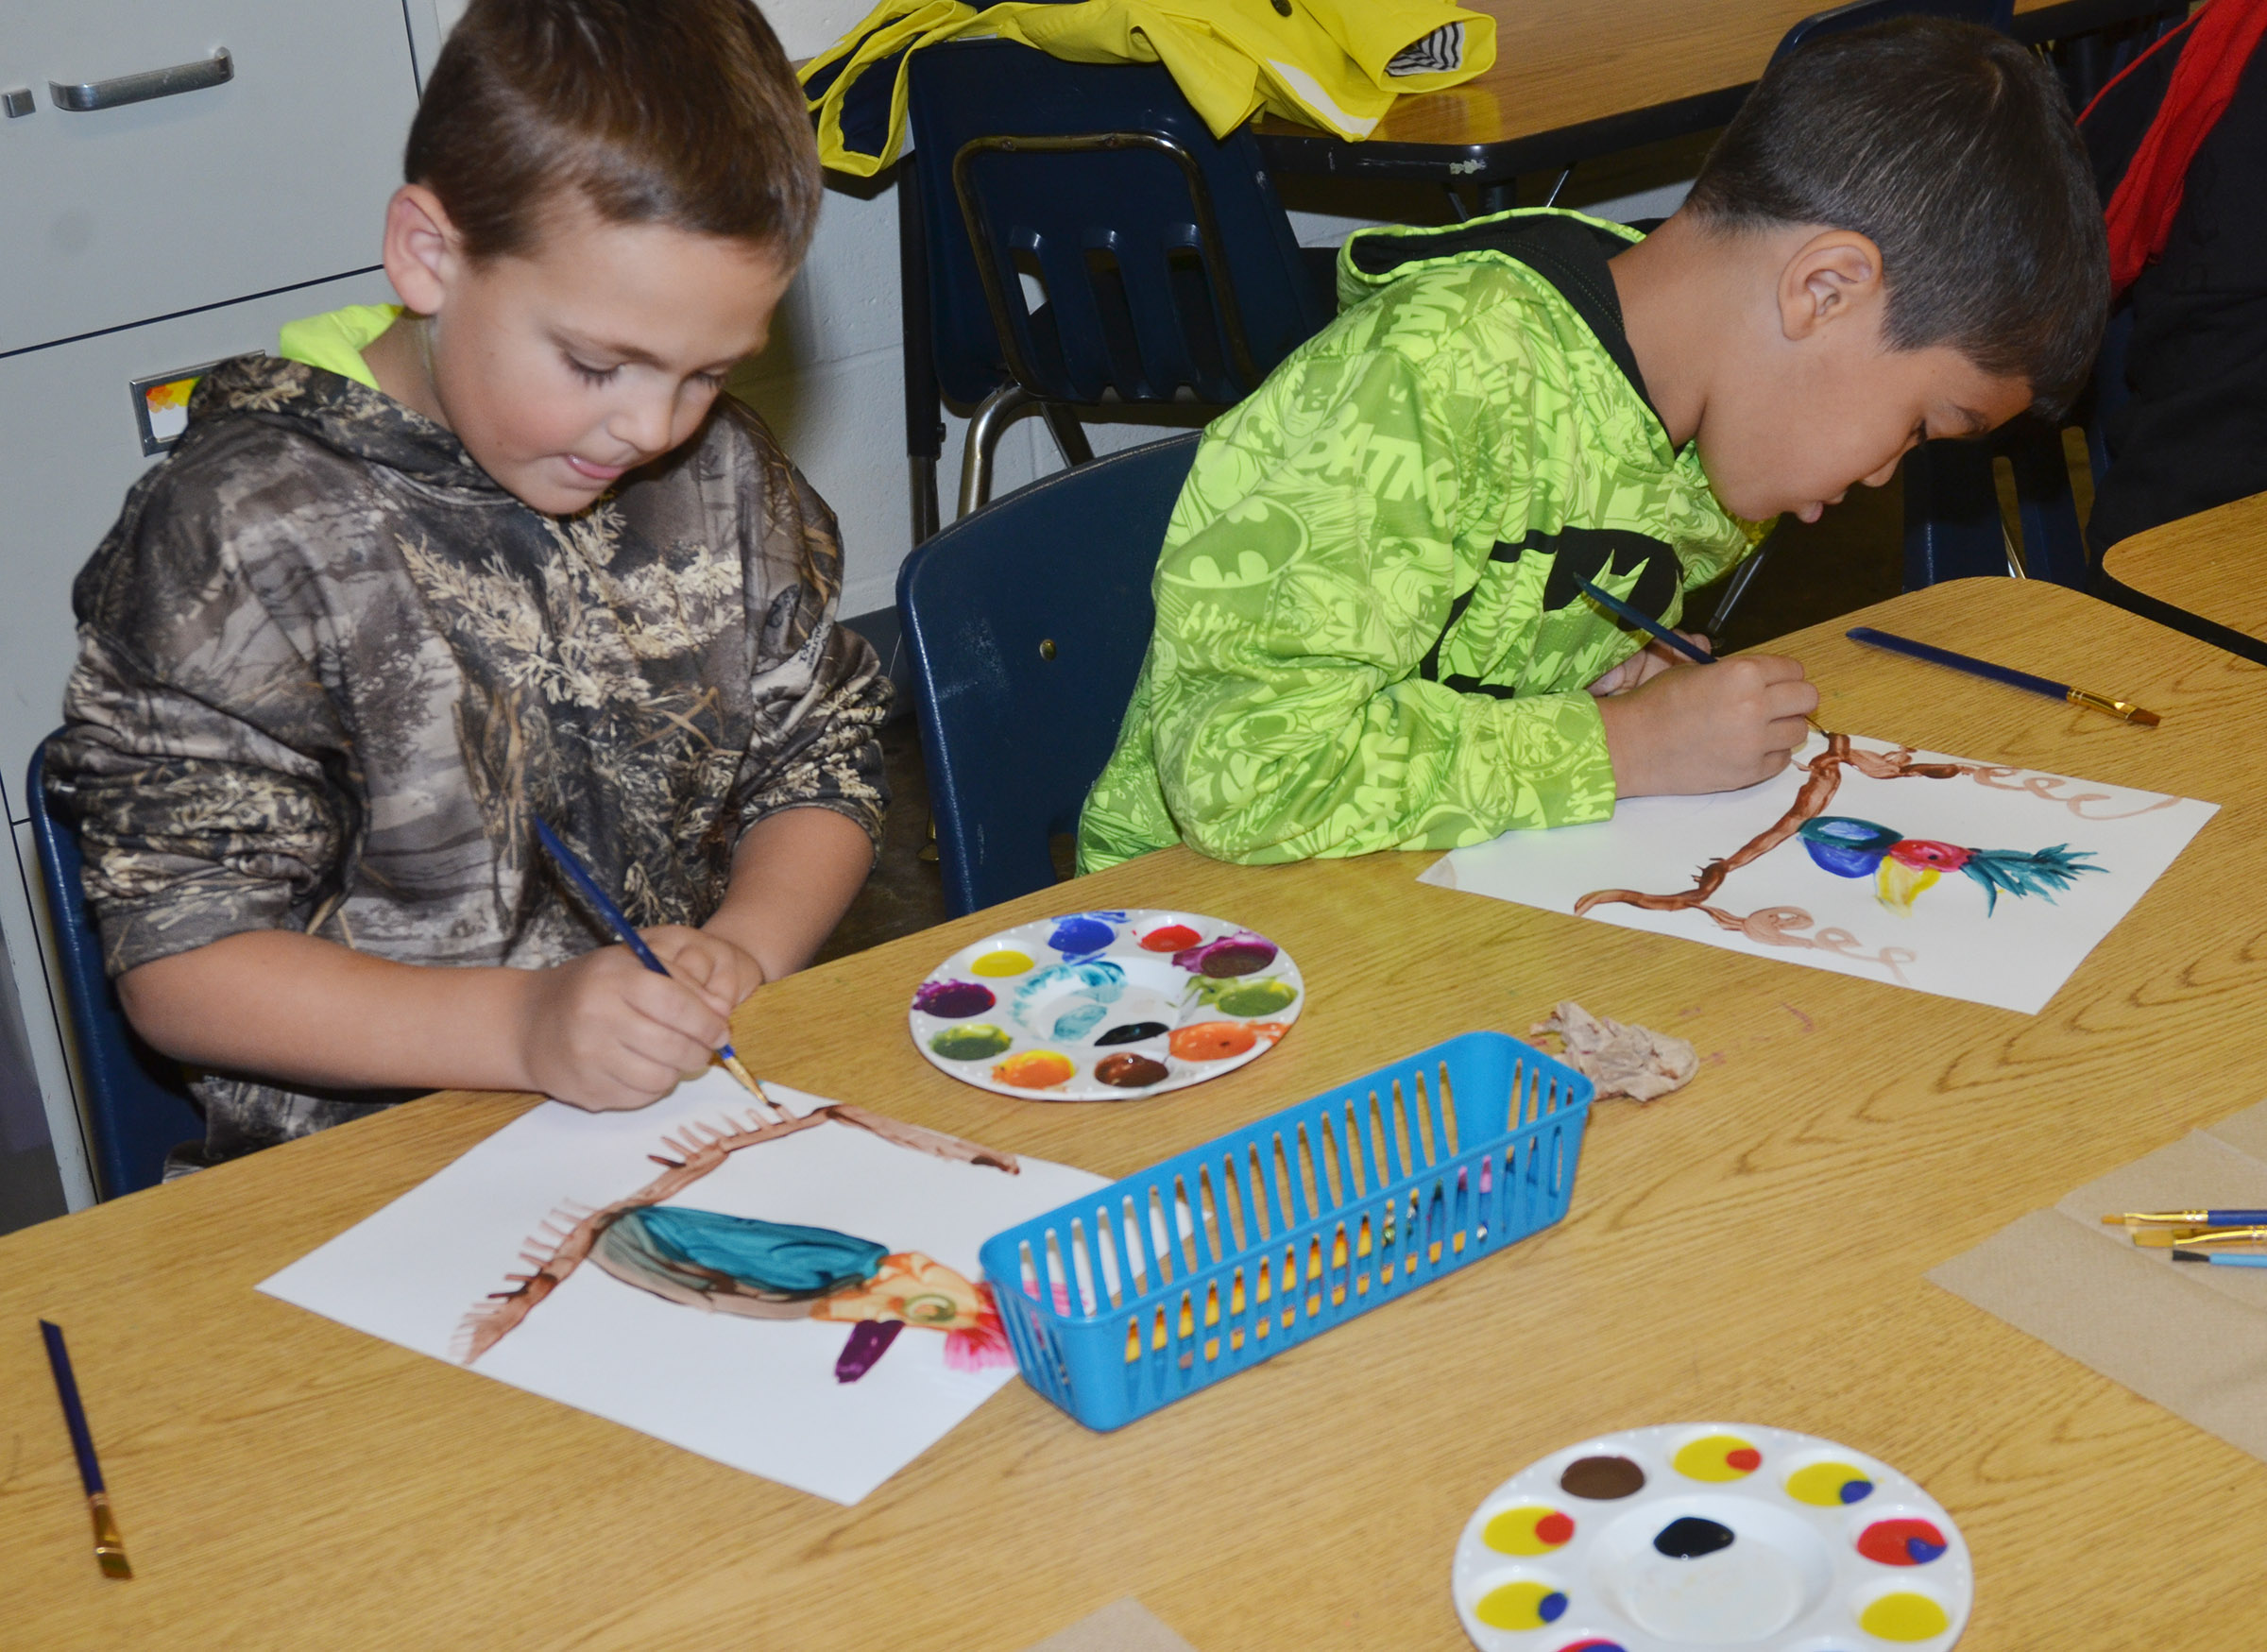 CES second-graders Brendan Martin, at left, and Xadrian Fugate paint.